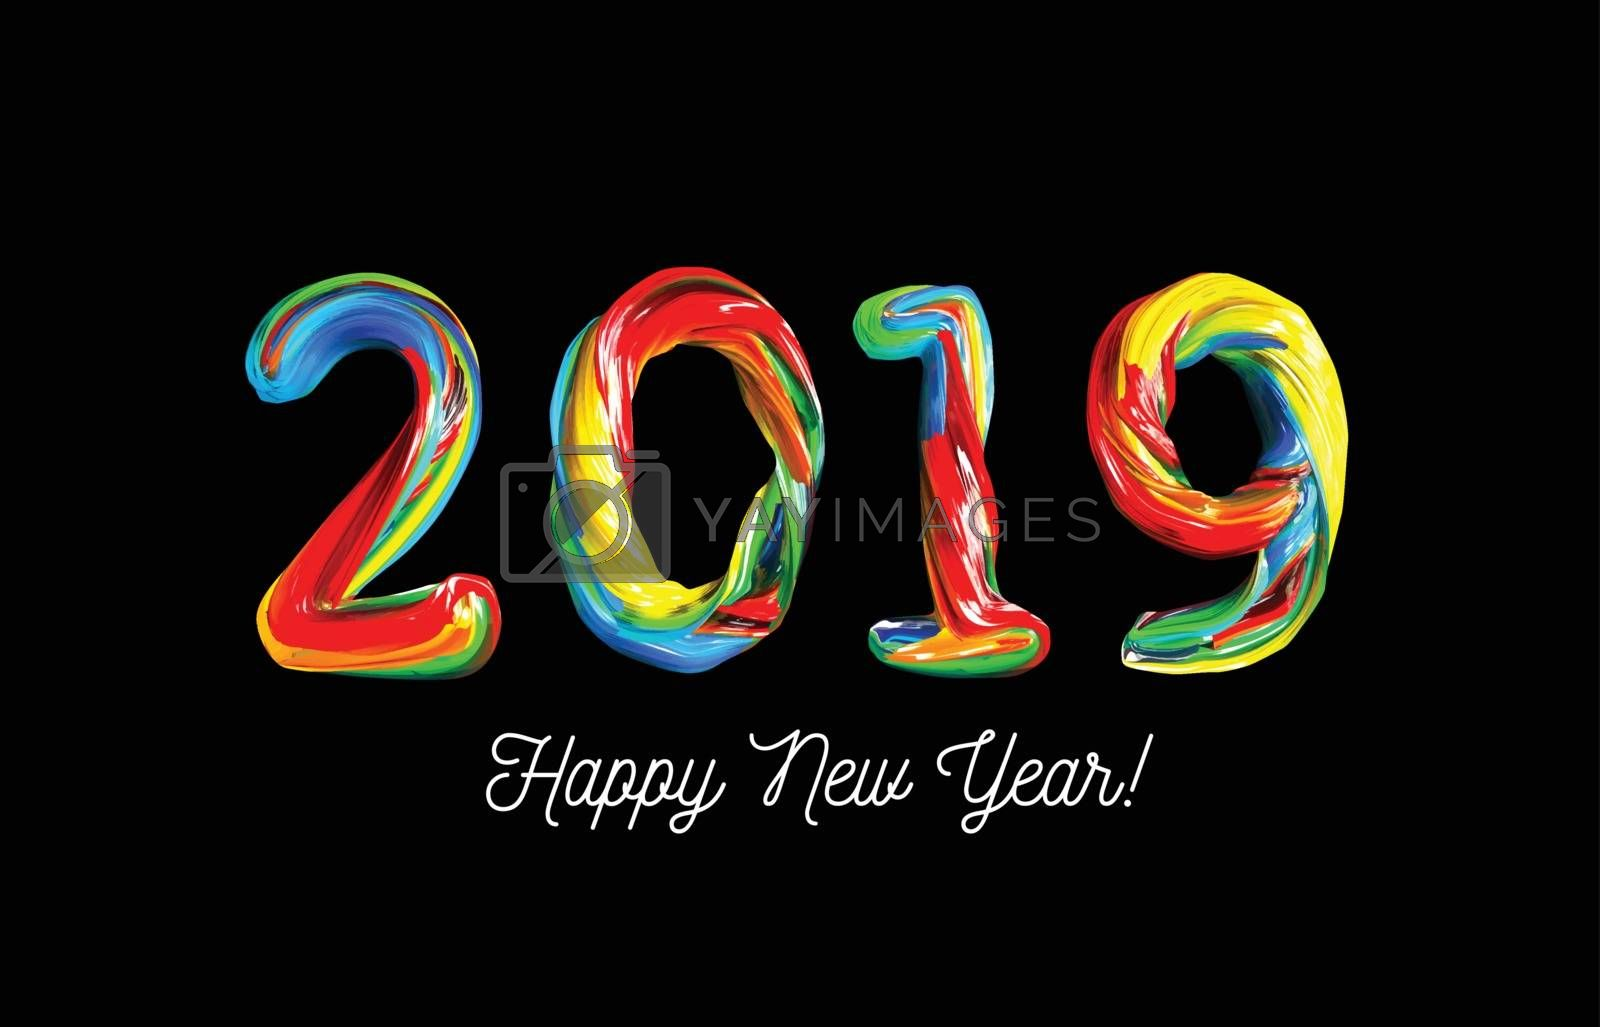 Colorful 3d text 2019. Congratulations on the new year 2019. Vector illustration on black background